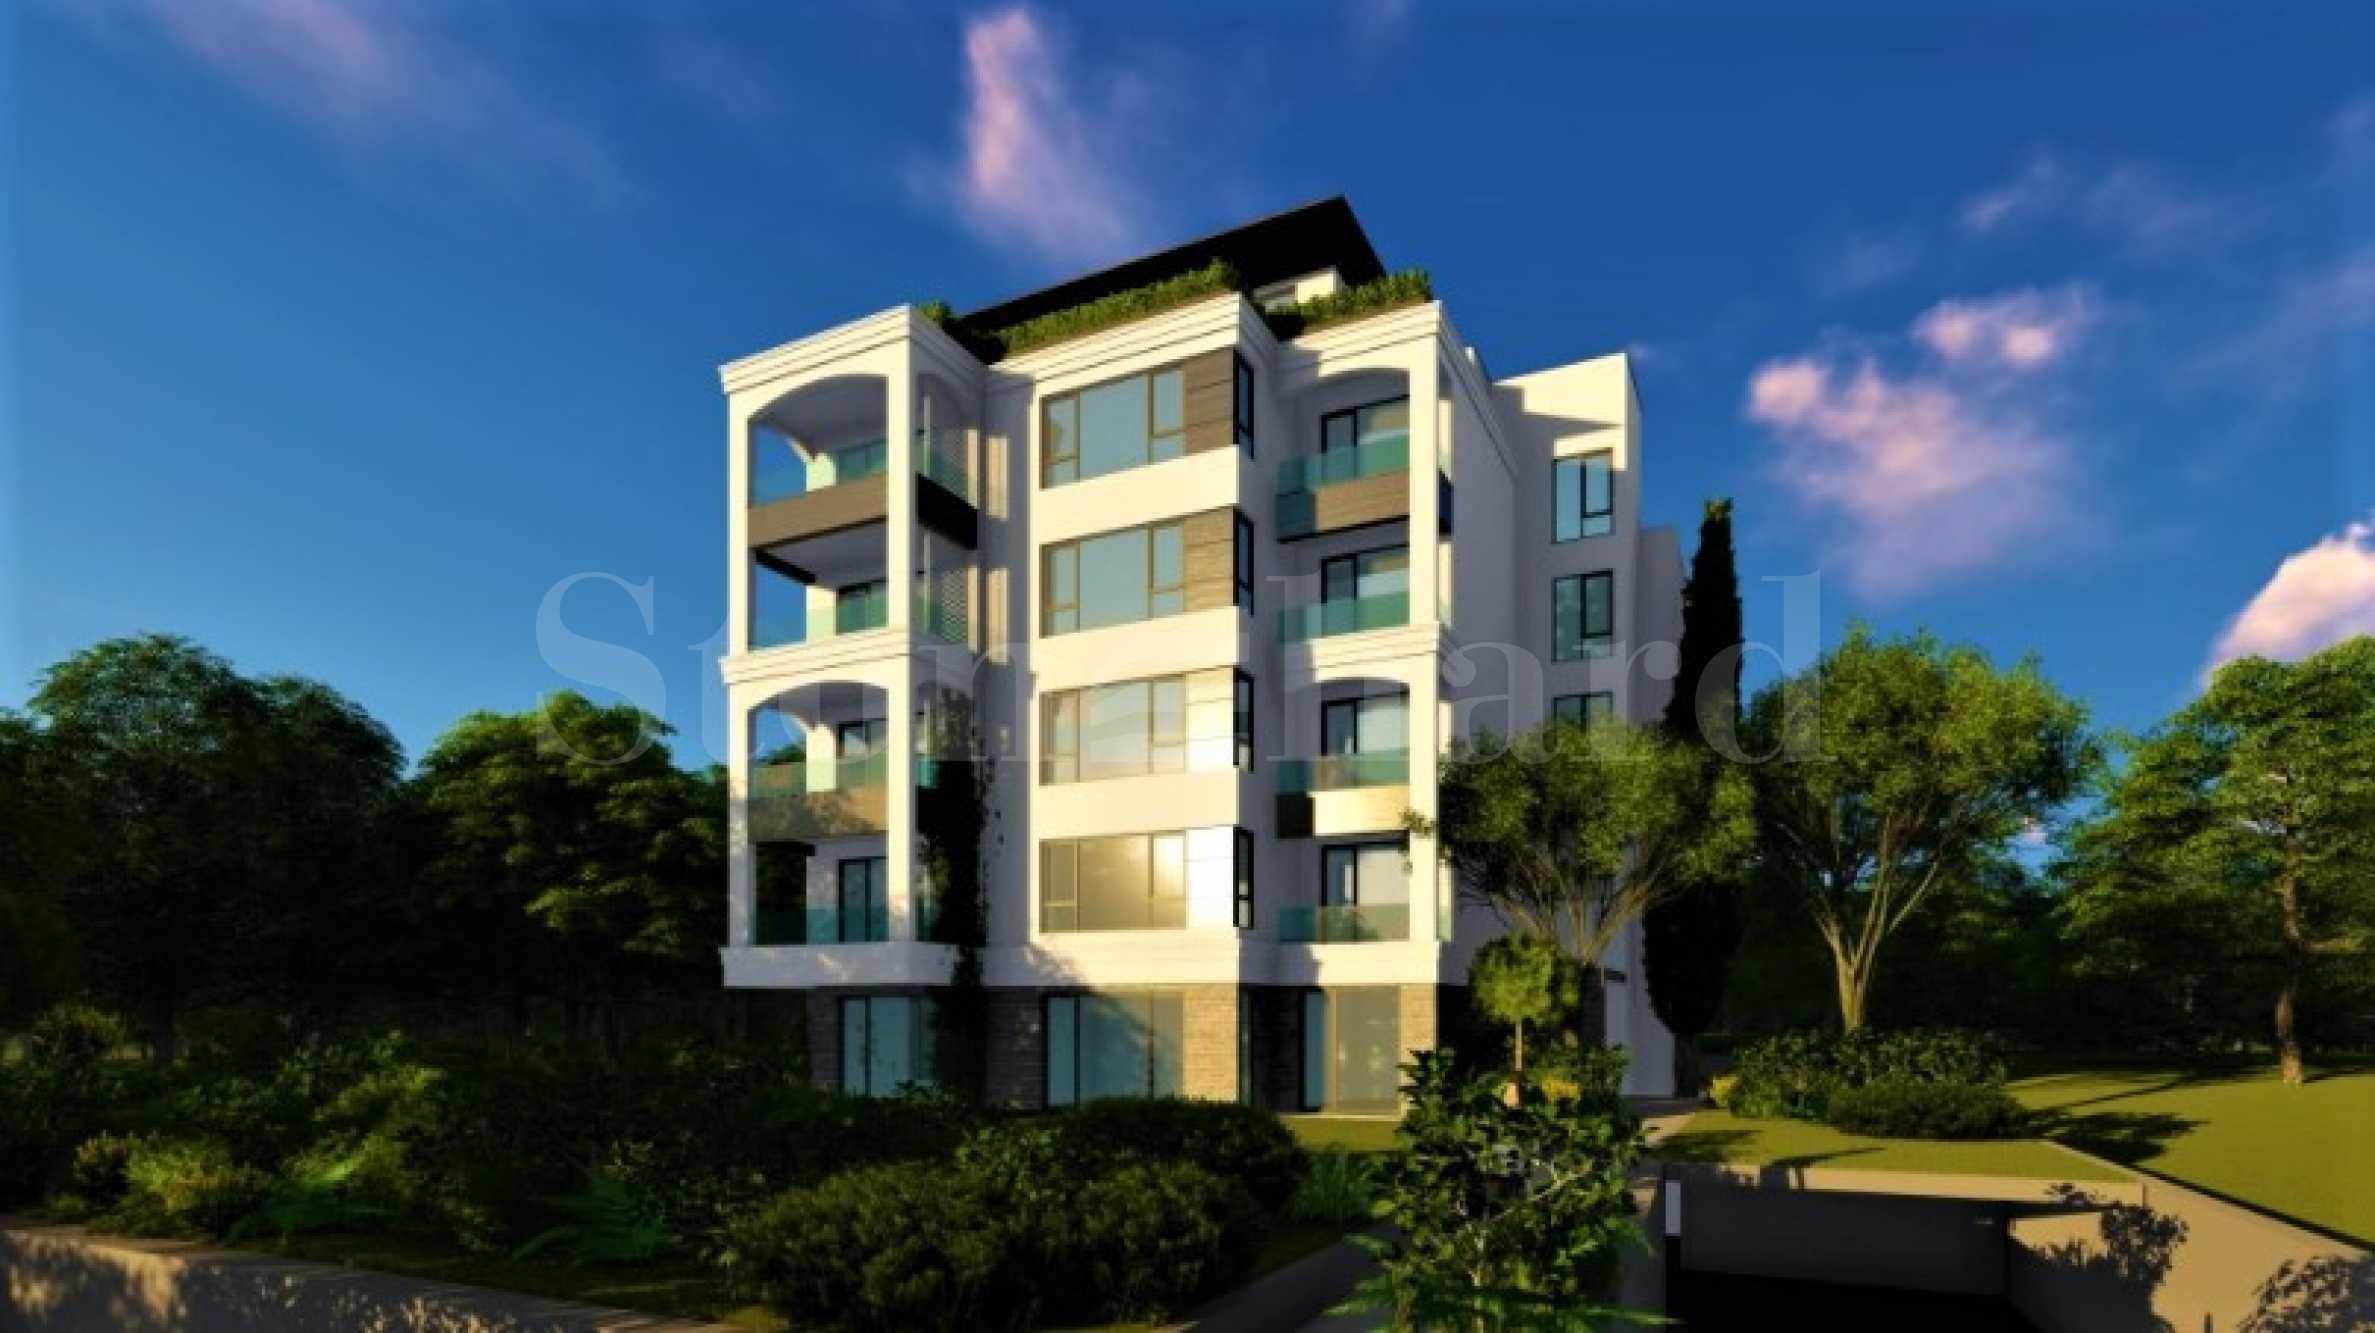 New apartments in an elegant building in a famous seaside resort2 - Stonehard